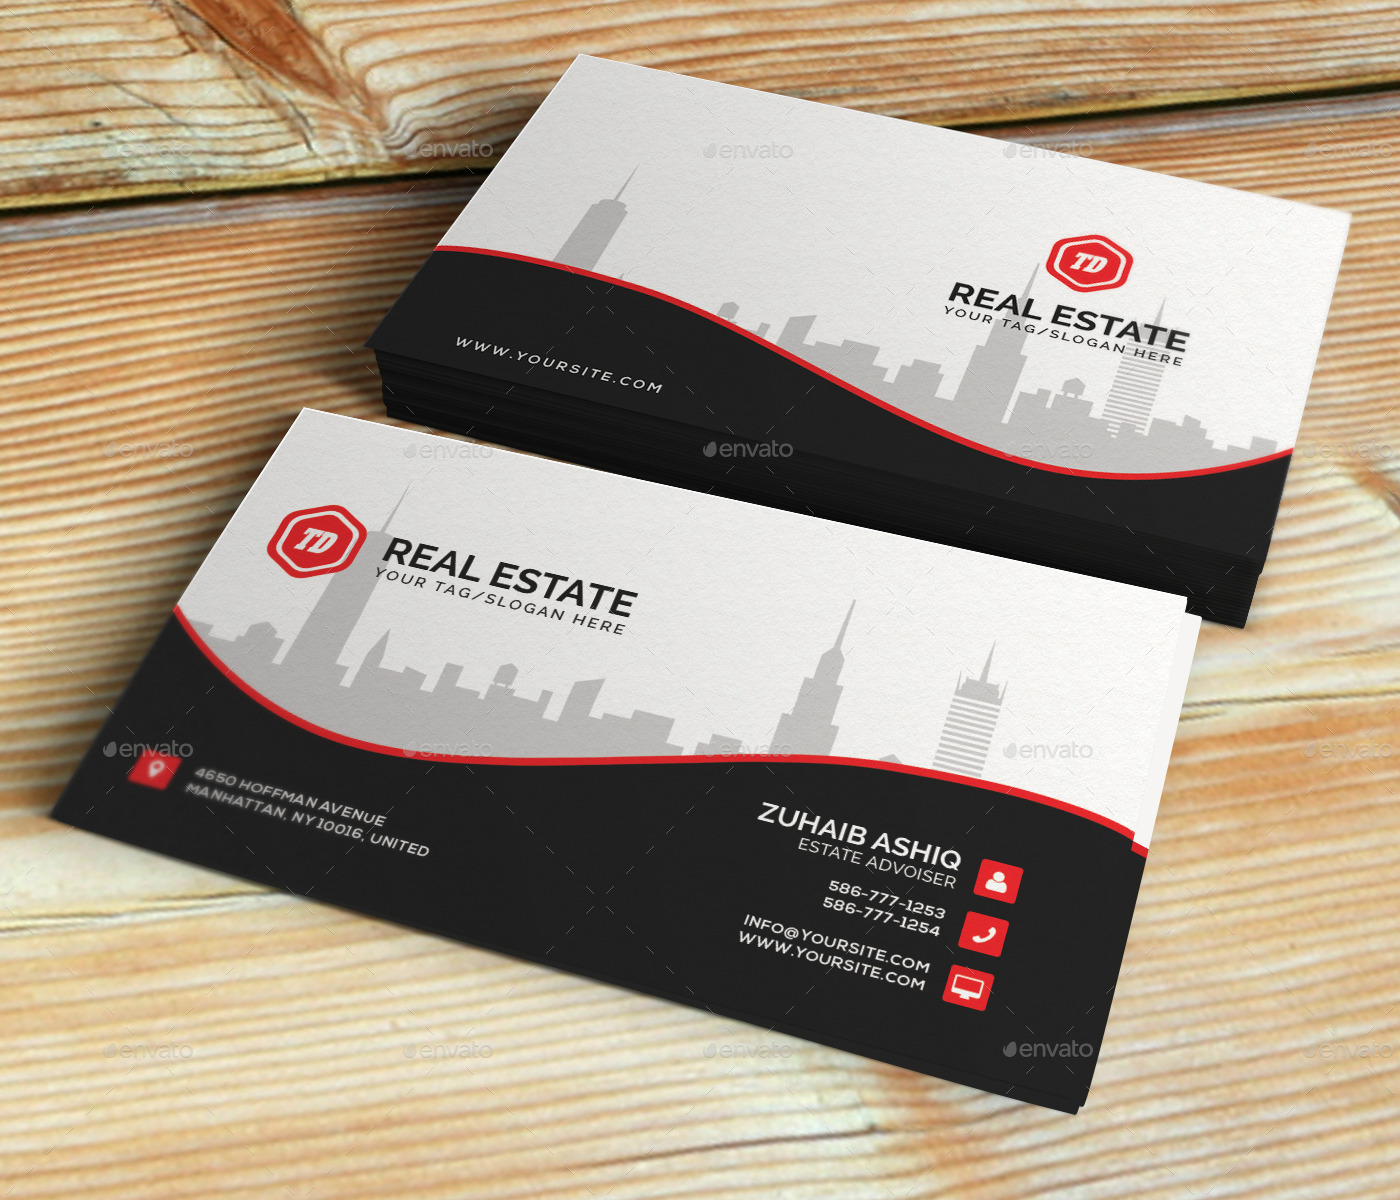 Real estate business card template by themedesk graphicriver real estate business card template corporate business cards preview01 previewg reheart Gallery